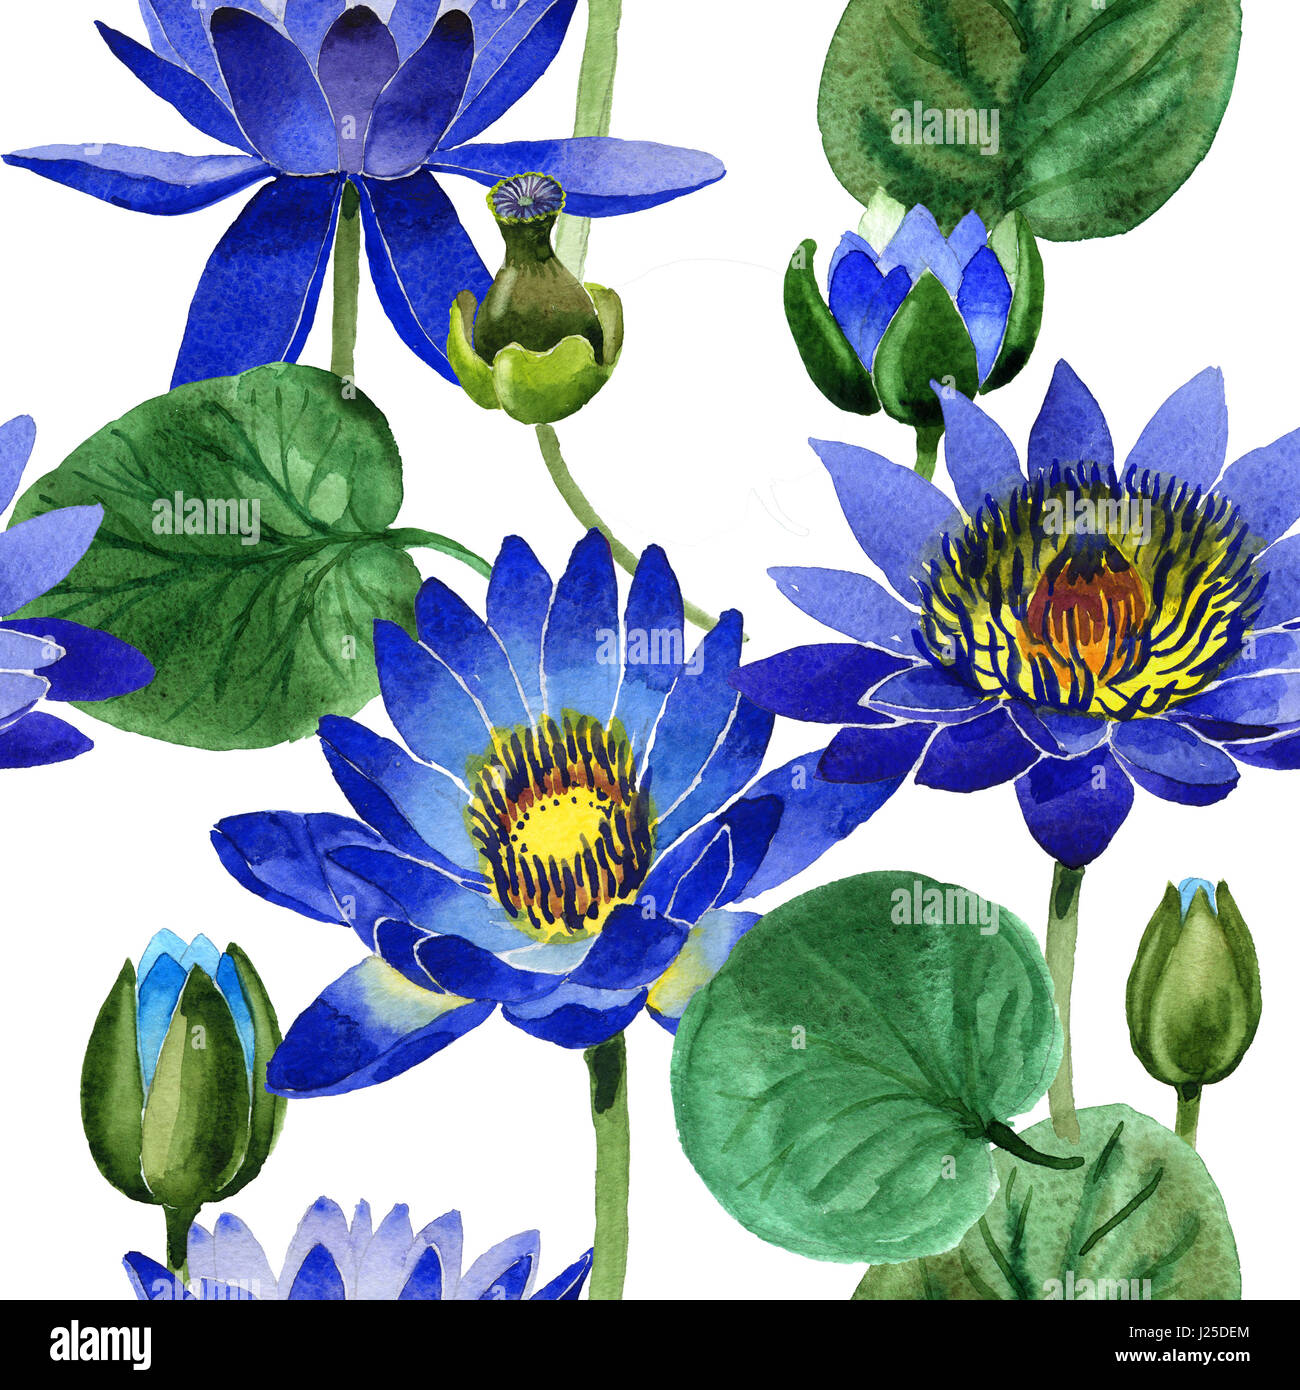 Lotus flower wallpaper stock photos lotus flower wallpaper stock wildflower blue lotus flower pattern in a watercolor style isolated full name of the plant izmirmasajfo